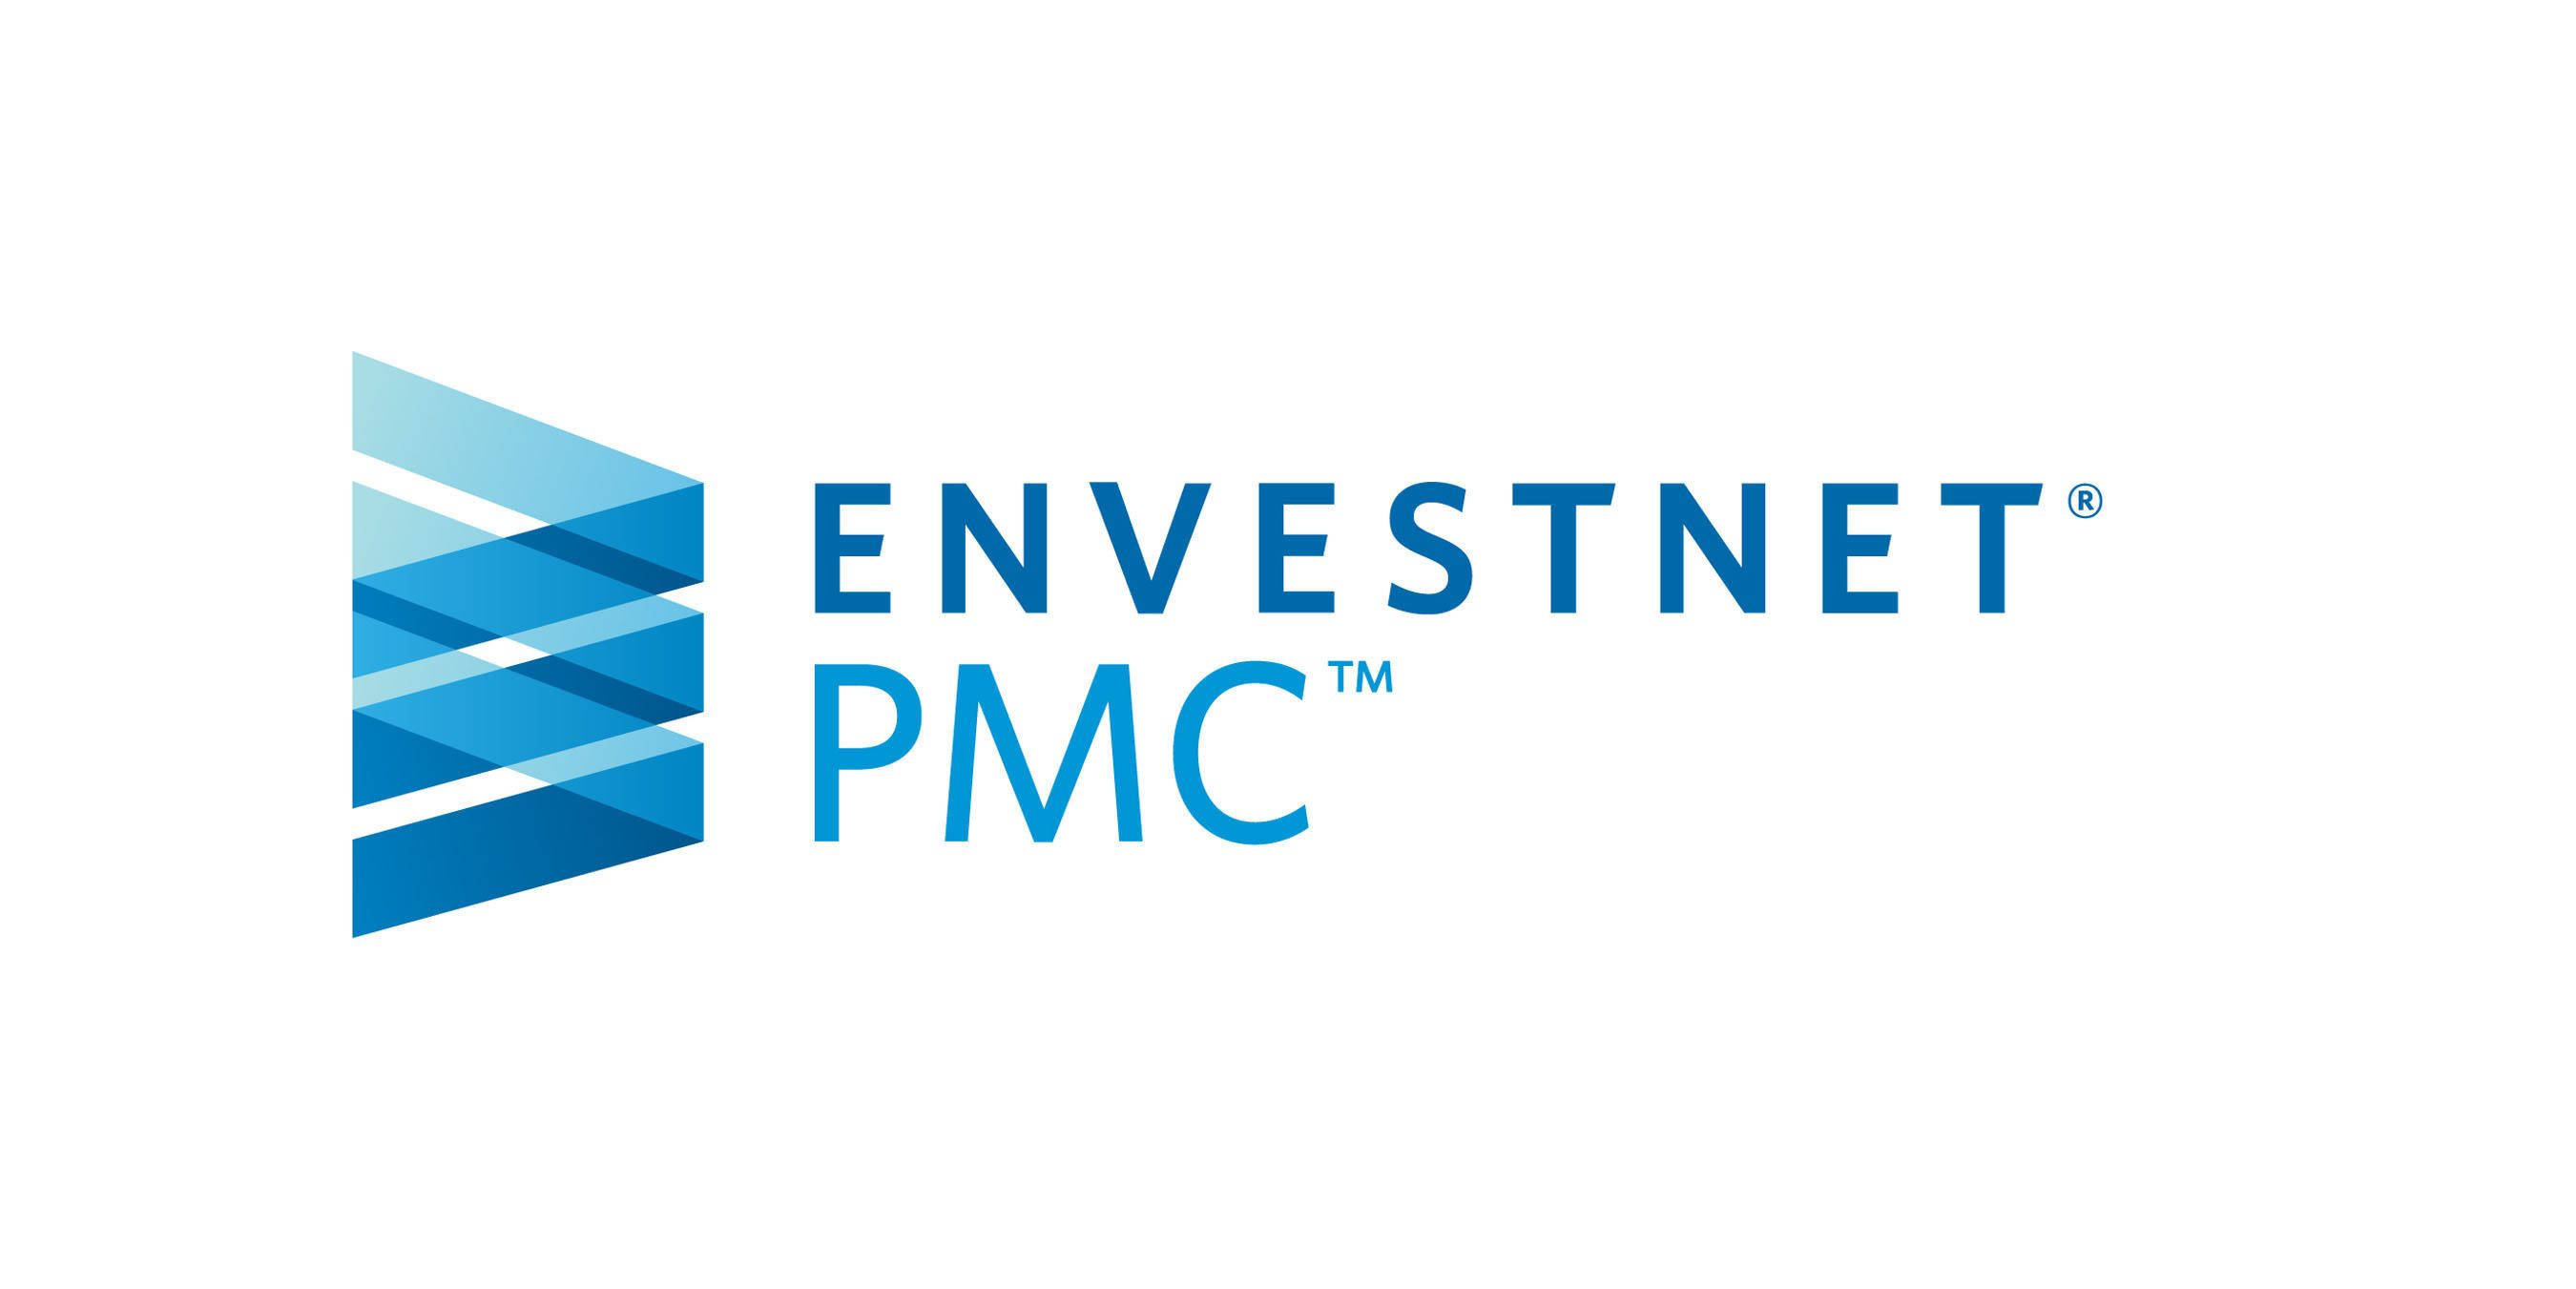 Envestnet   PMC provides independent advisors, broker-dealers, and institutional investors with the research, expertise, and investment solutions - from due diligence and comprehensive manager research to portfolio consulting and portfolio management - they need to help improve client outcomes. For more information on Envestnet   PMC, please visit http://www.investpmc.com/.